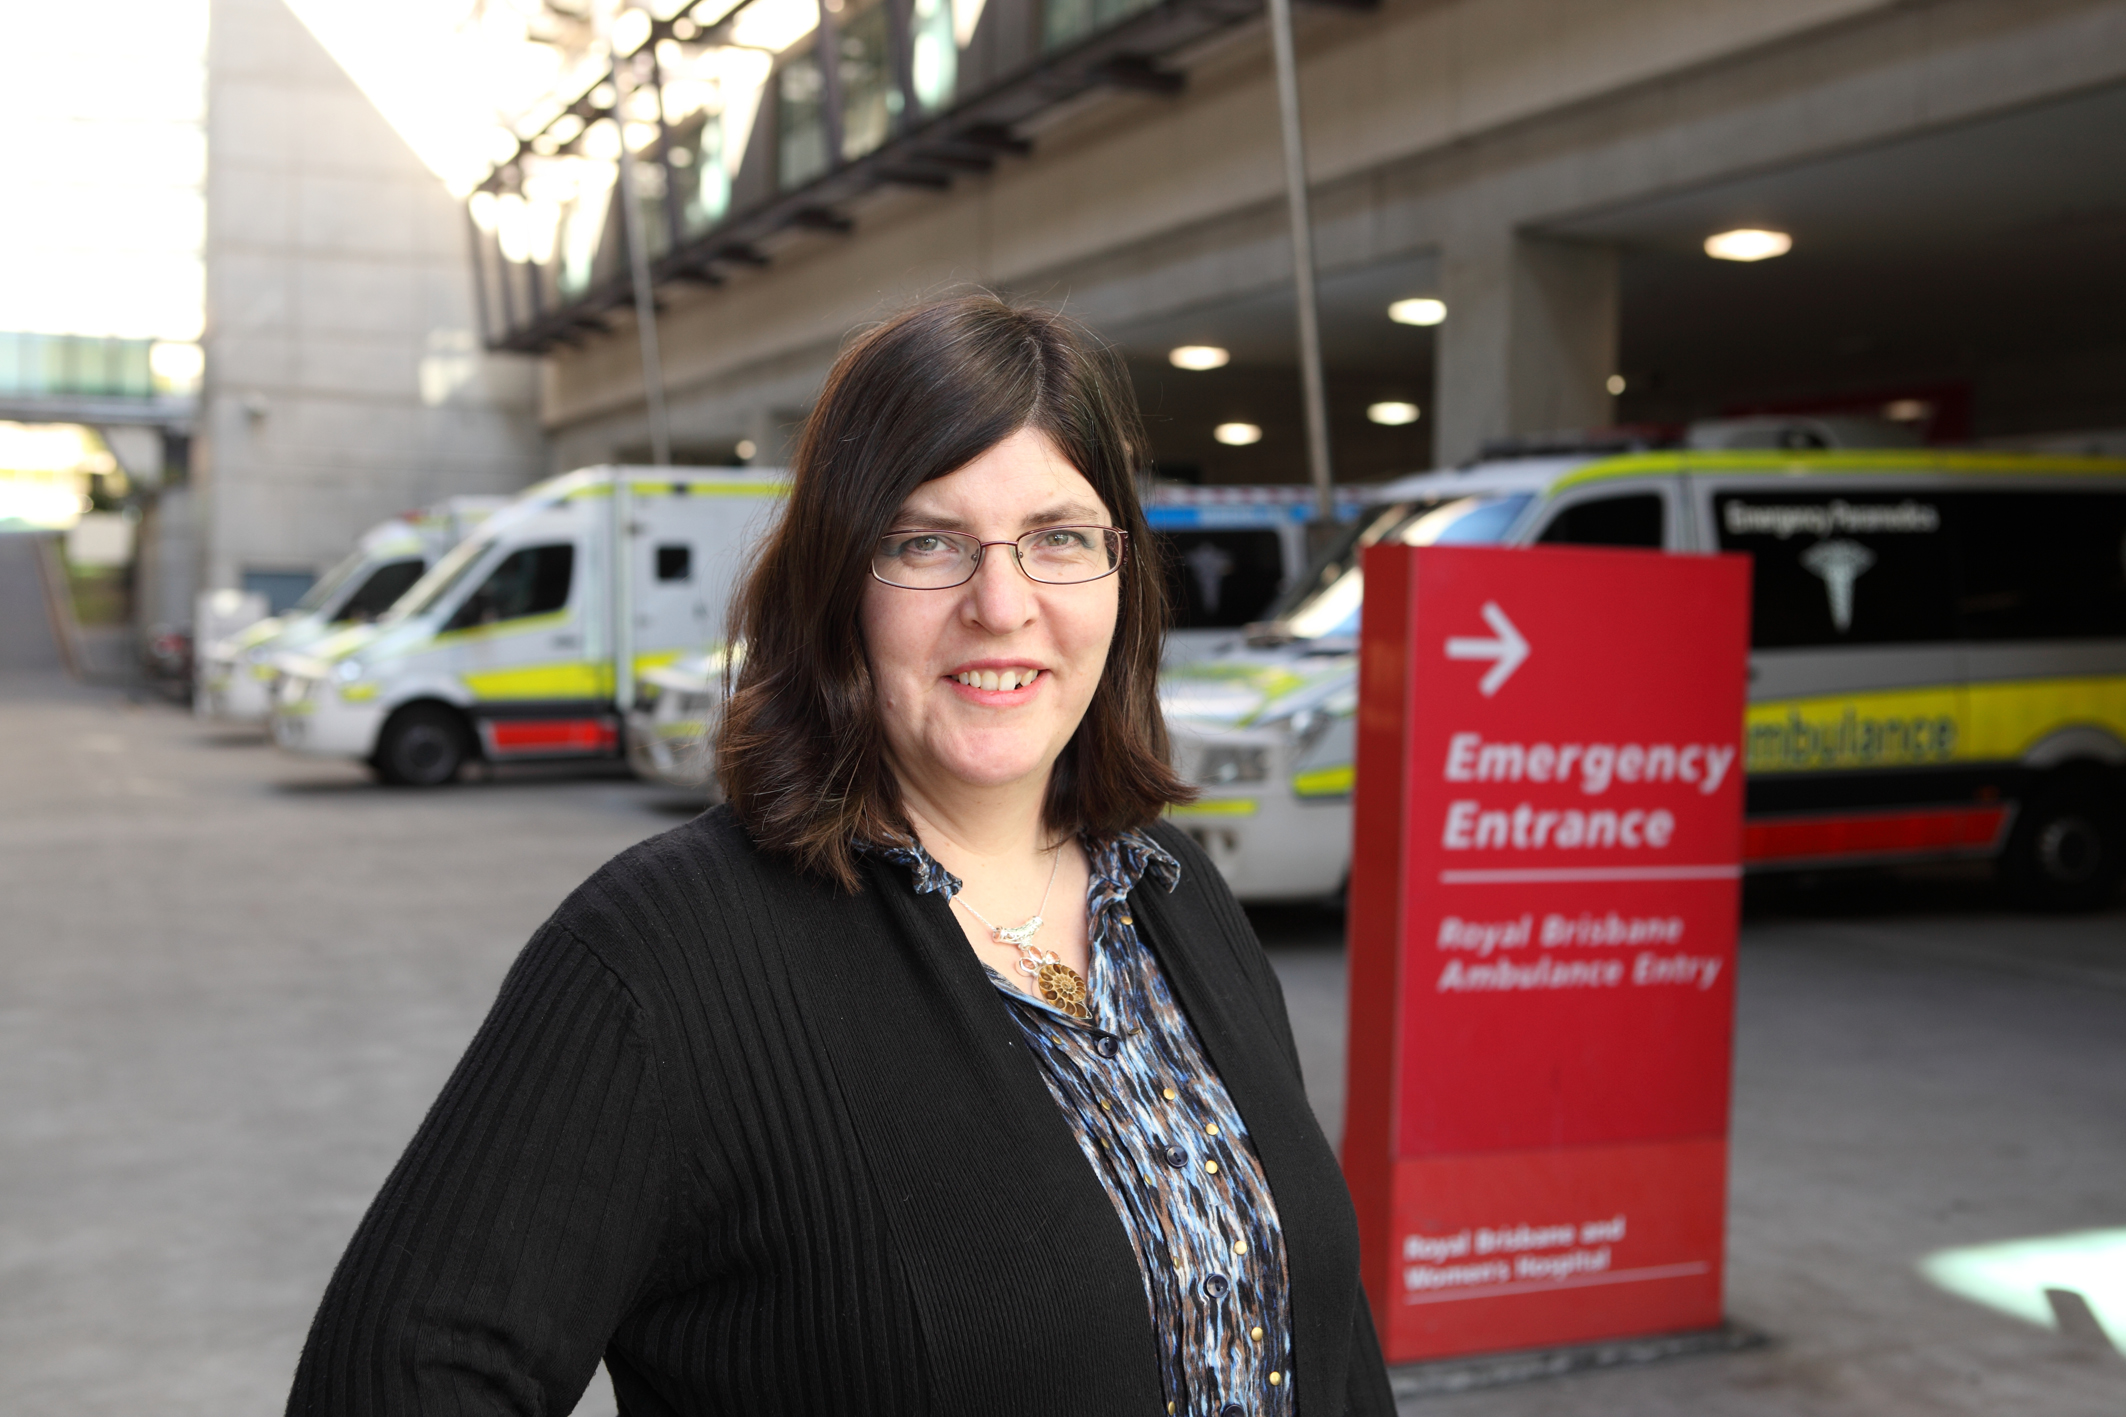 Dr Sarah Dods stands outside an Emergency department in a major hospital